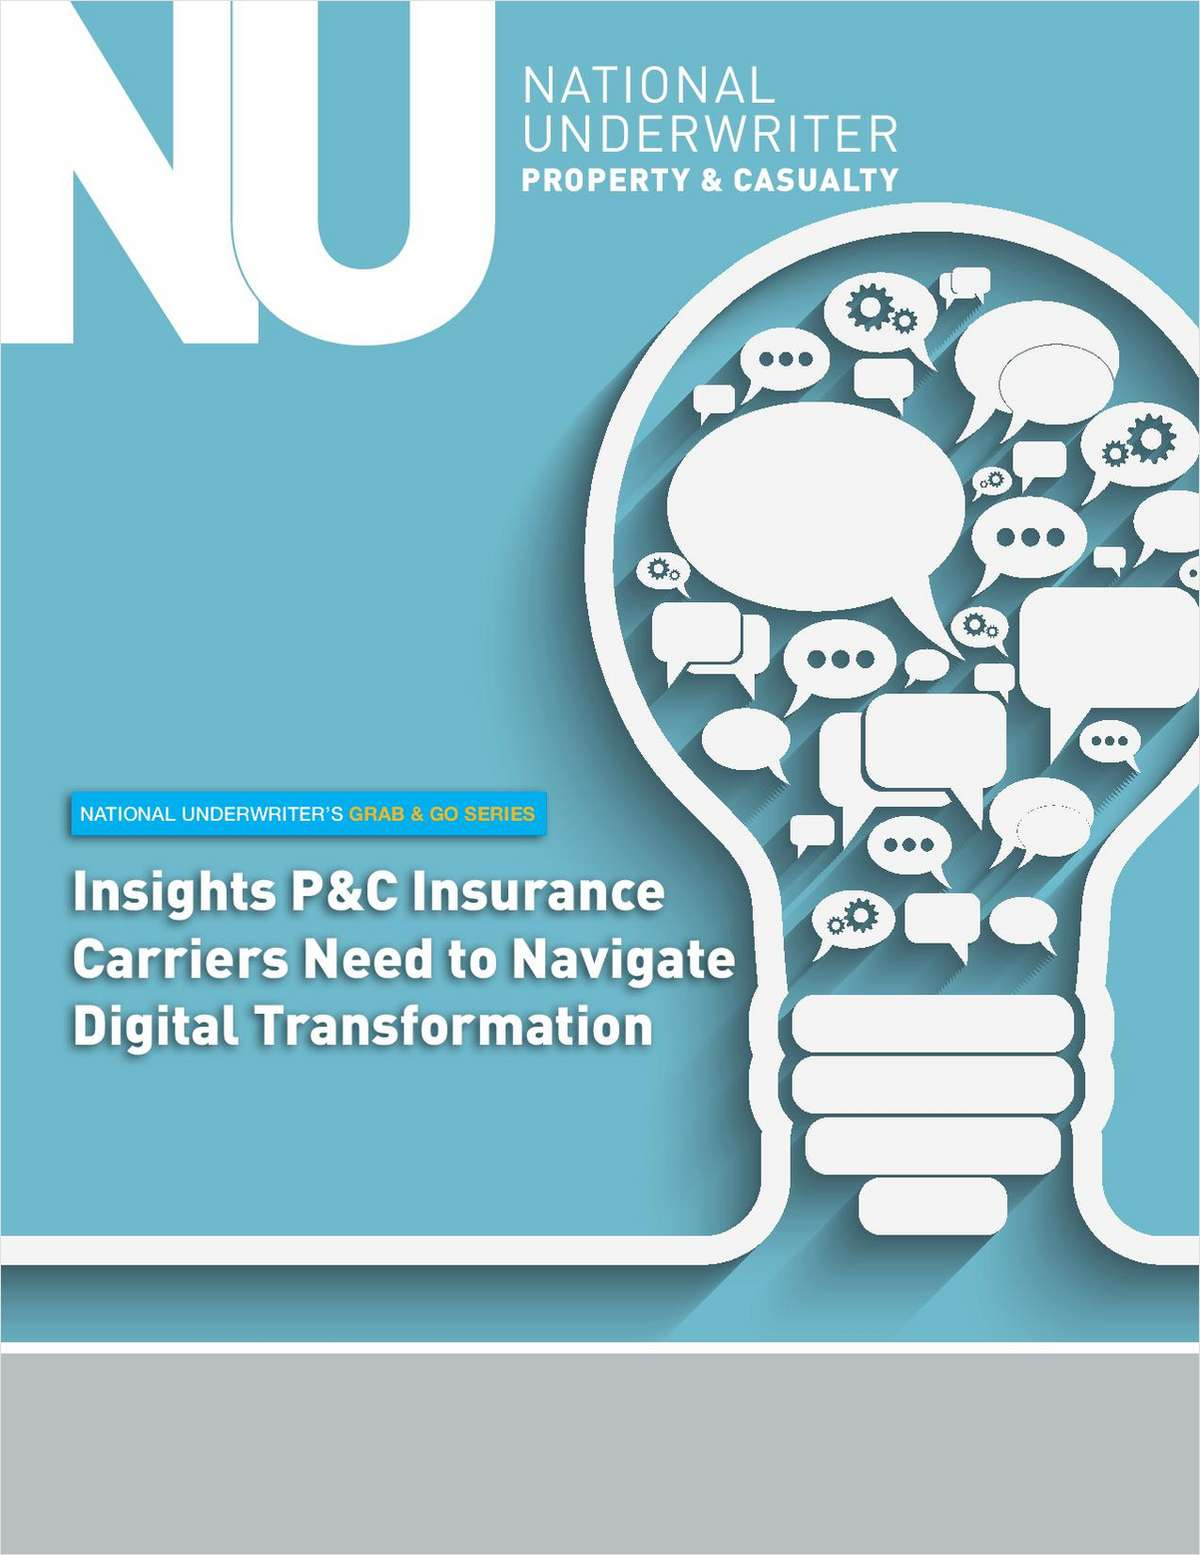 Insights P&C Insurance Carriers Need to Navigate Digital Transformation